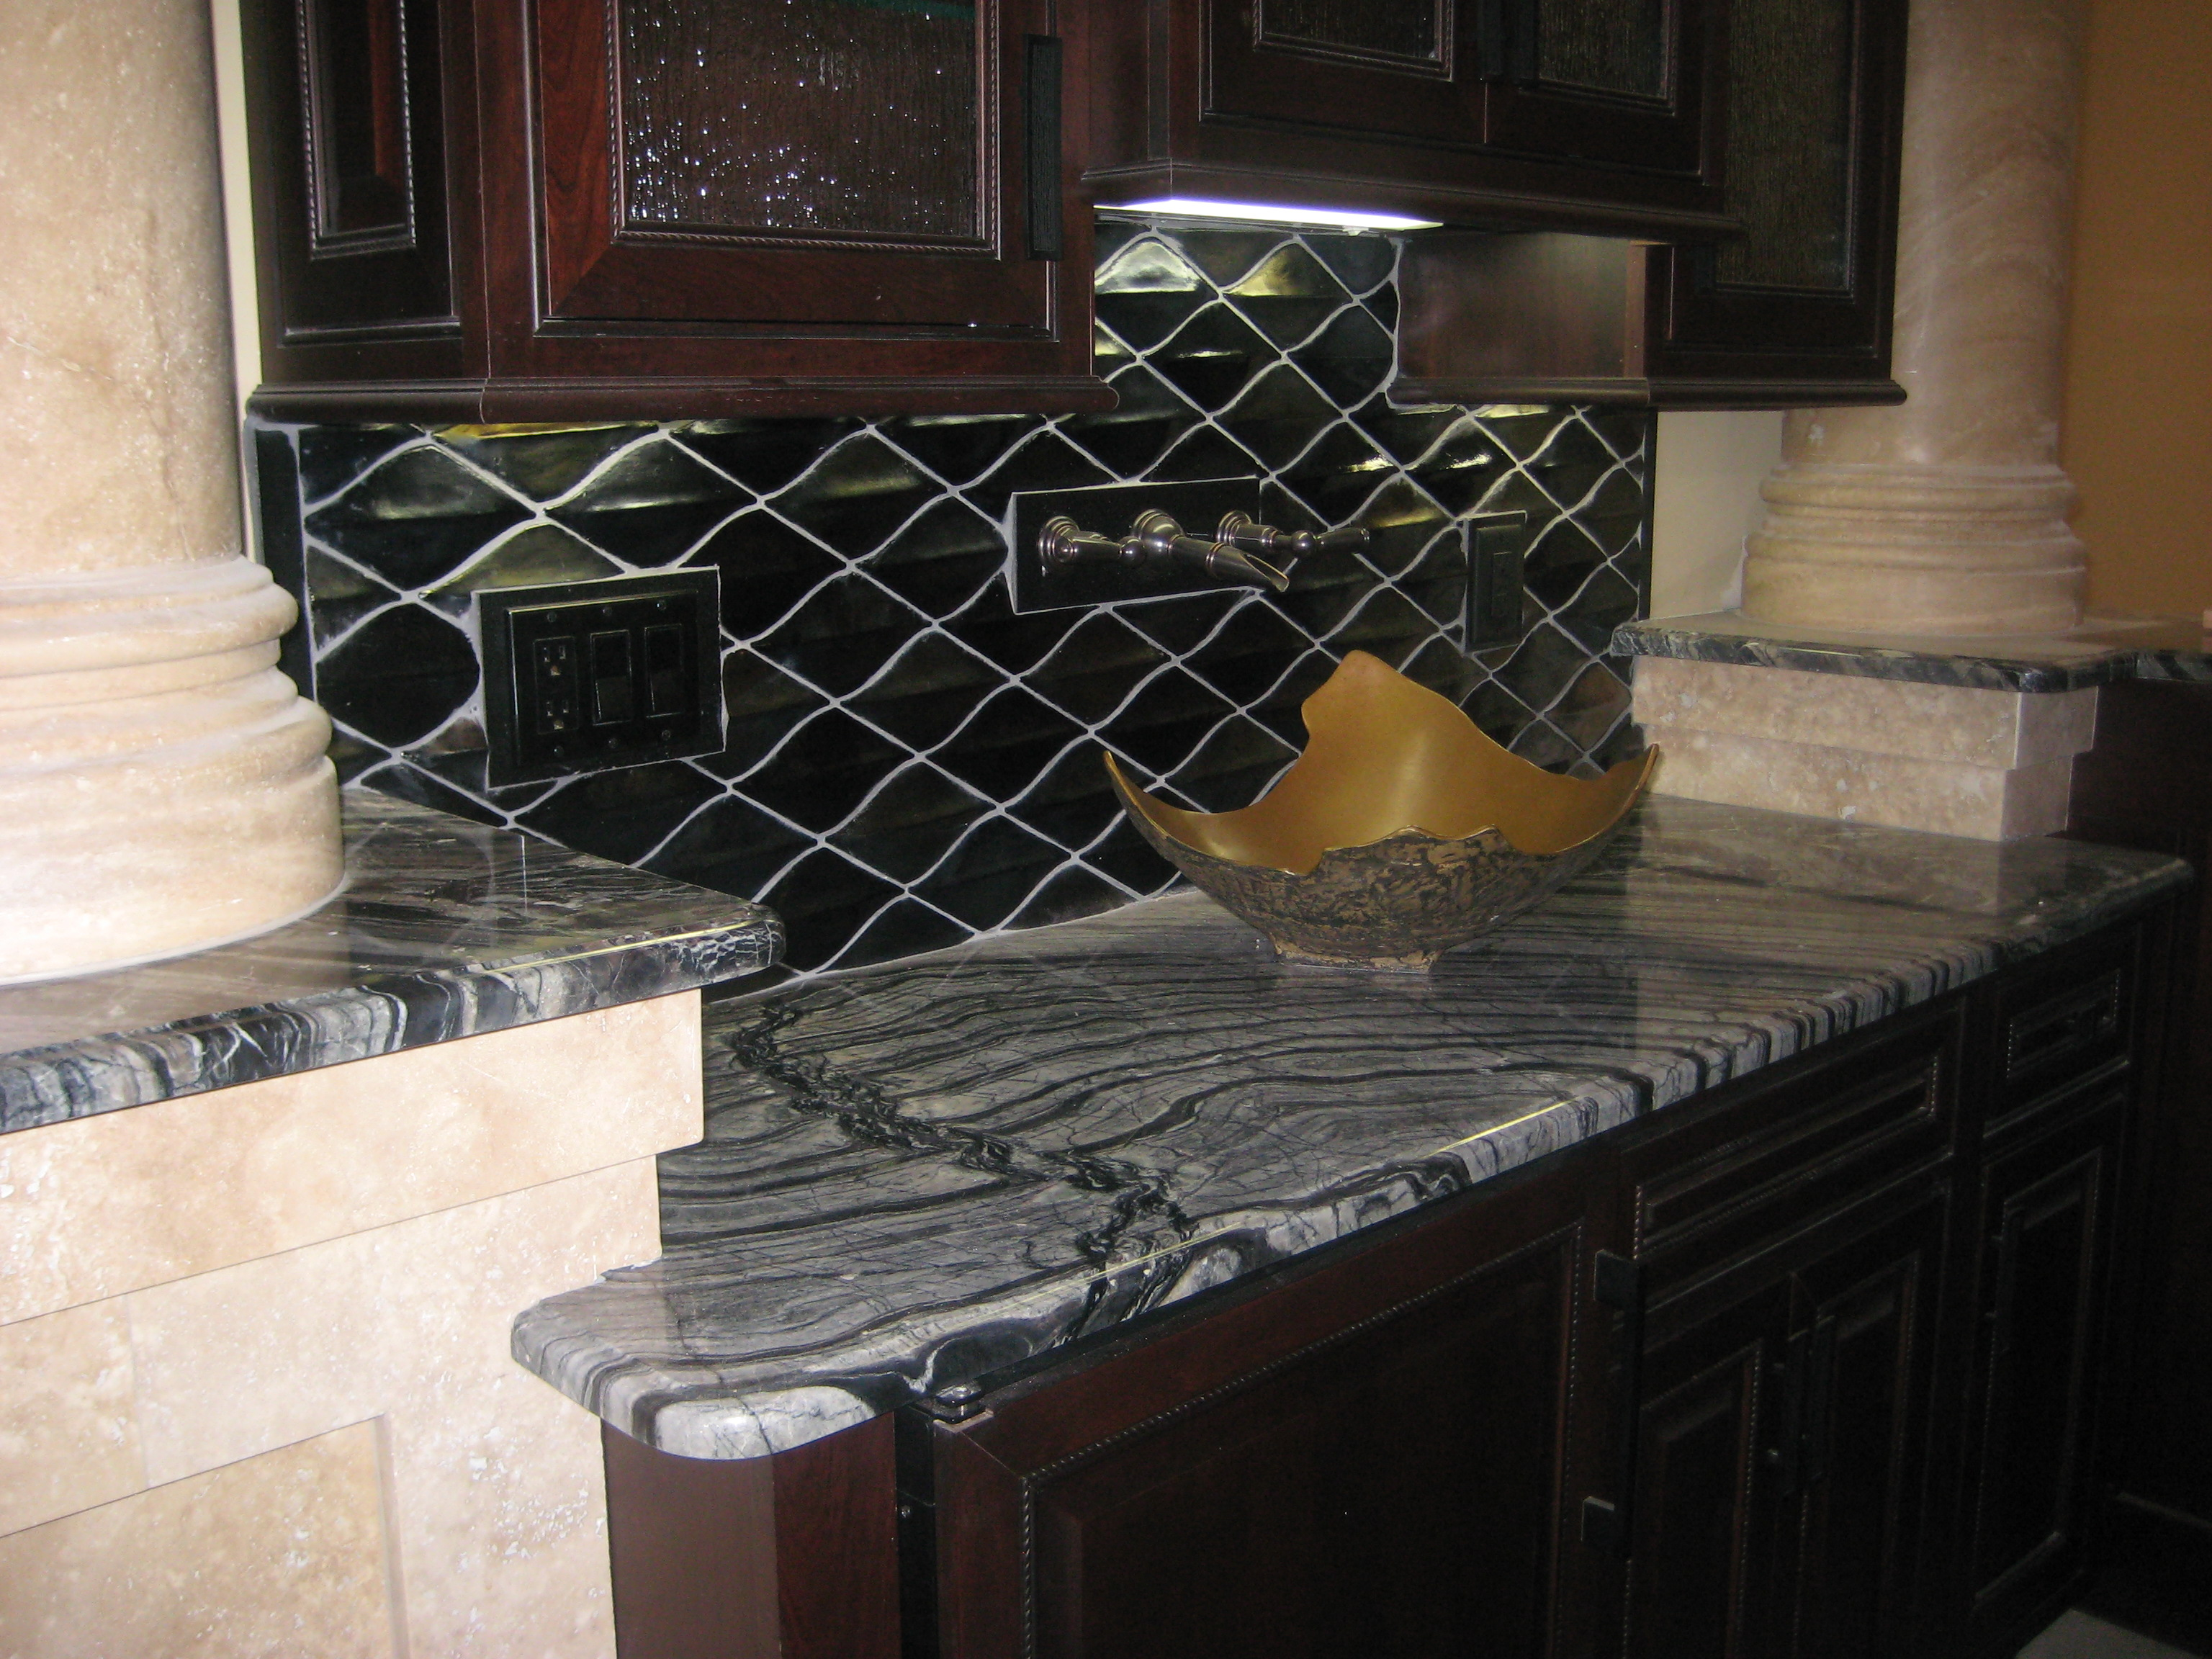 on of installed kingston store countertop waterfall fabrication in cost granite countertops milestone